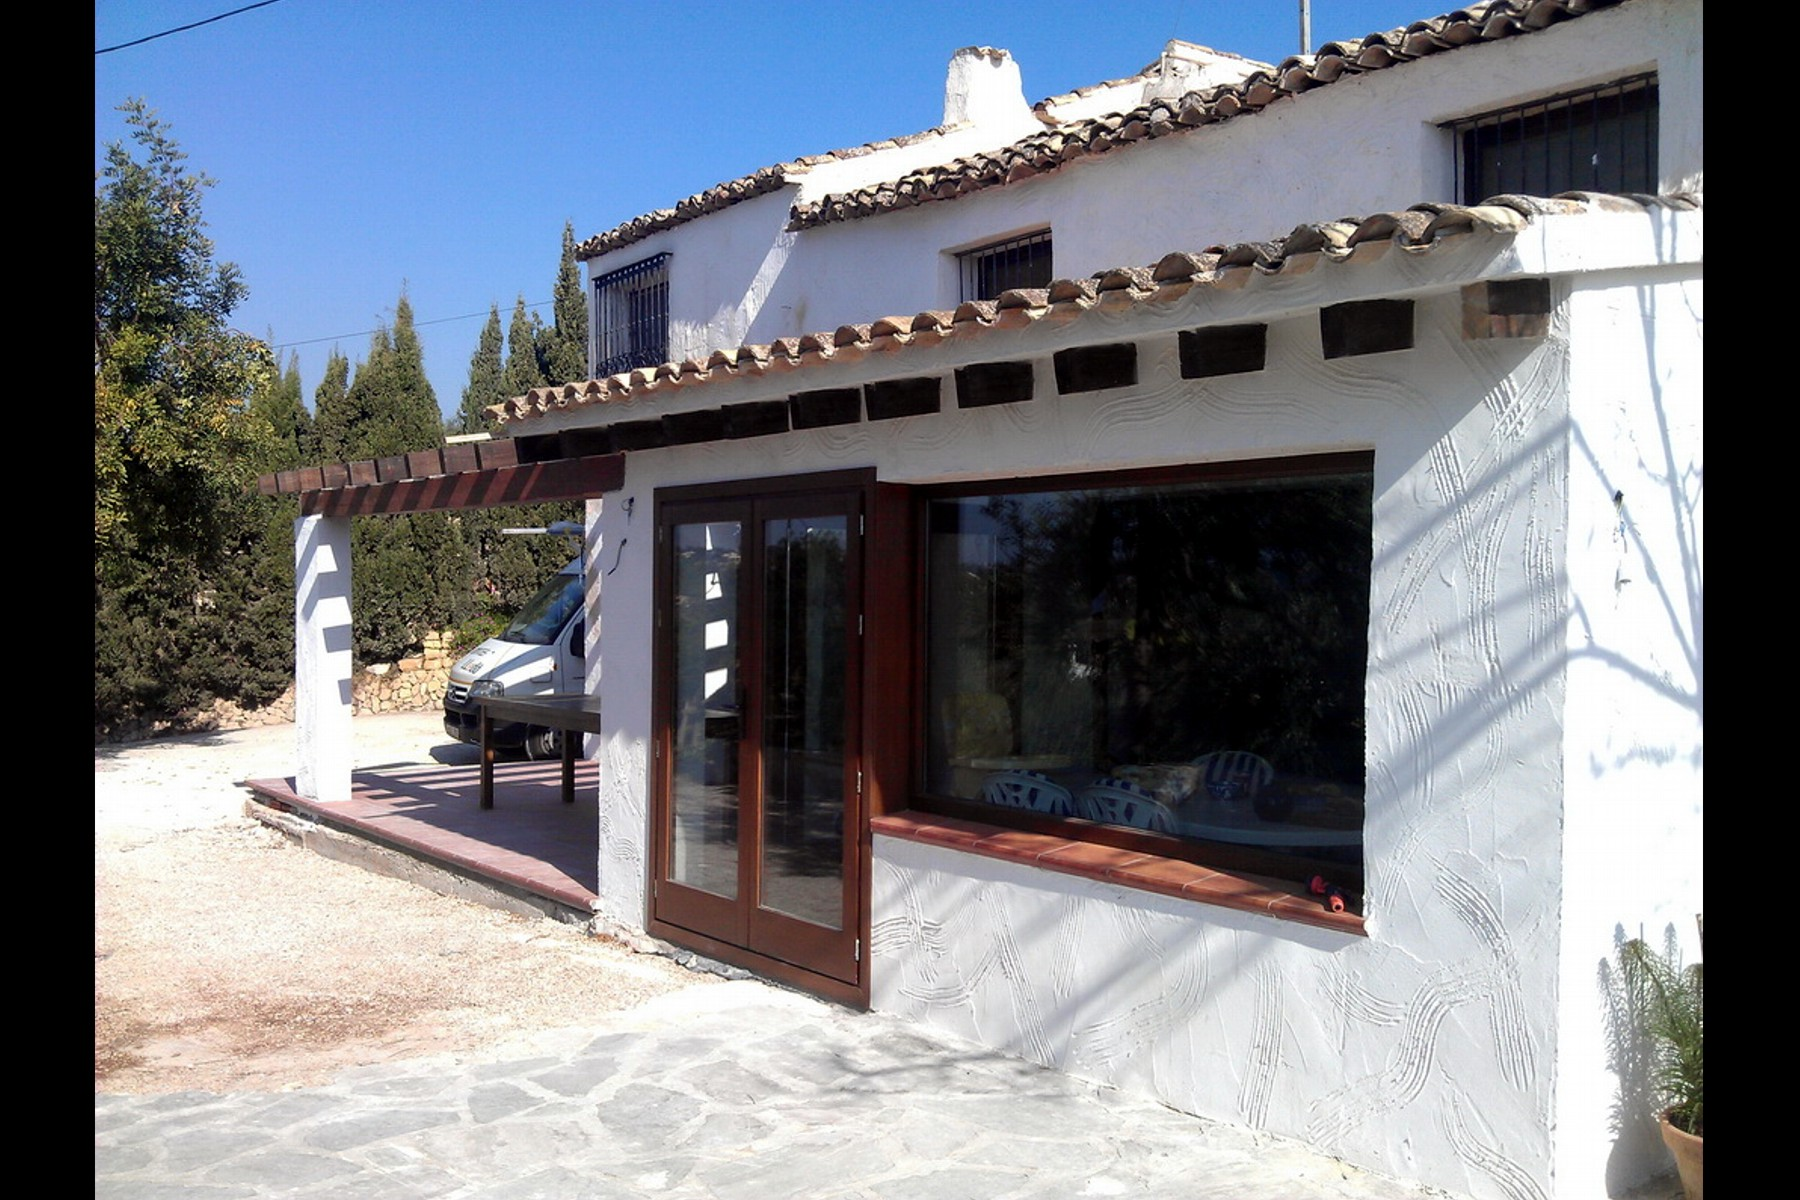 Imaginarq-422-Vivienda-unifamiliar-Altea-Alicante-01A